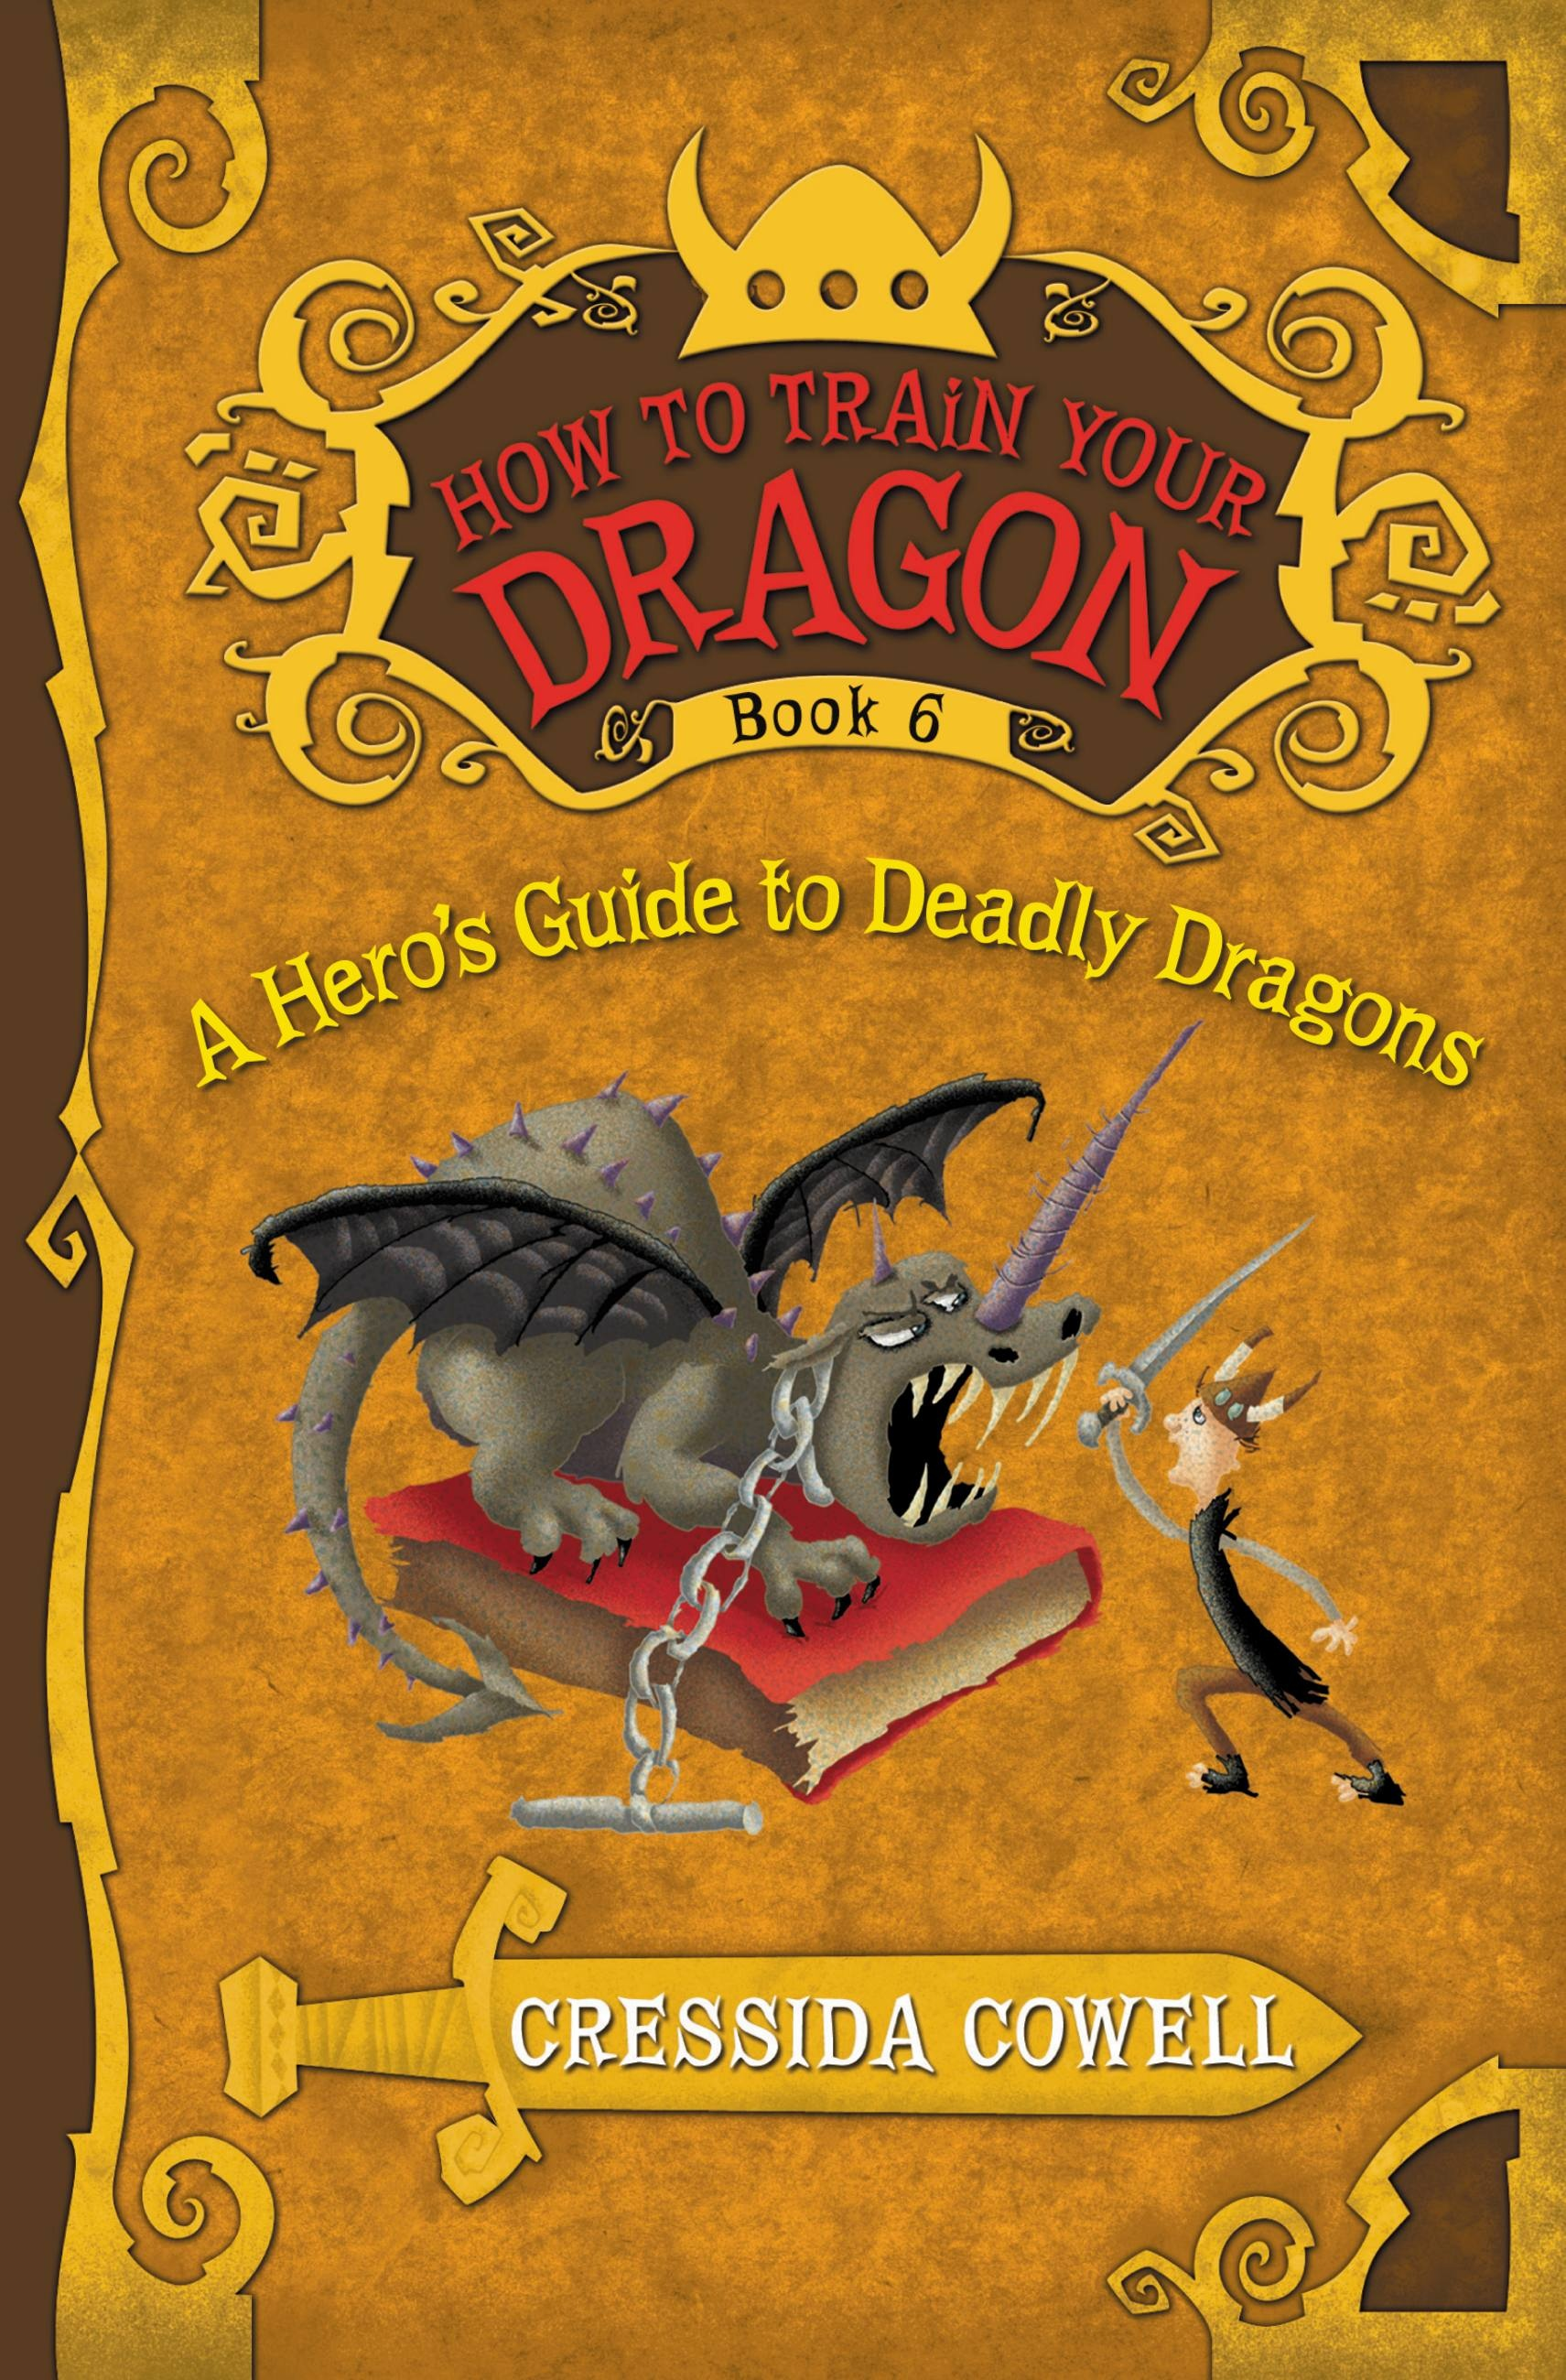 How to train your dragon a heros guide to deadly dragons by how to train your dragon a heros guide to deadly dragons by cressida cowell little brown books for young readers ccuart Choice Image